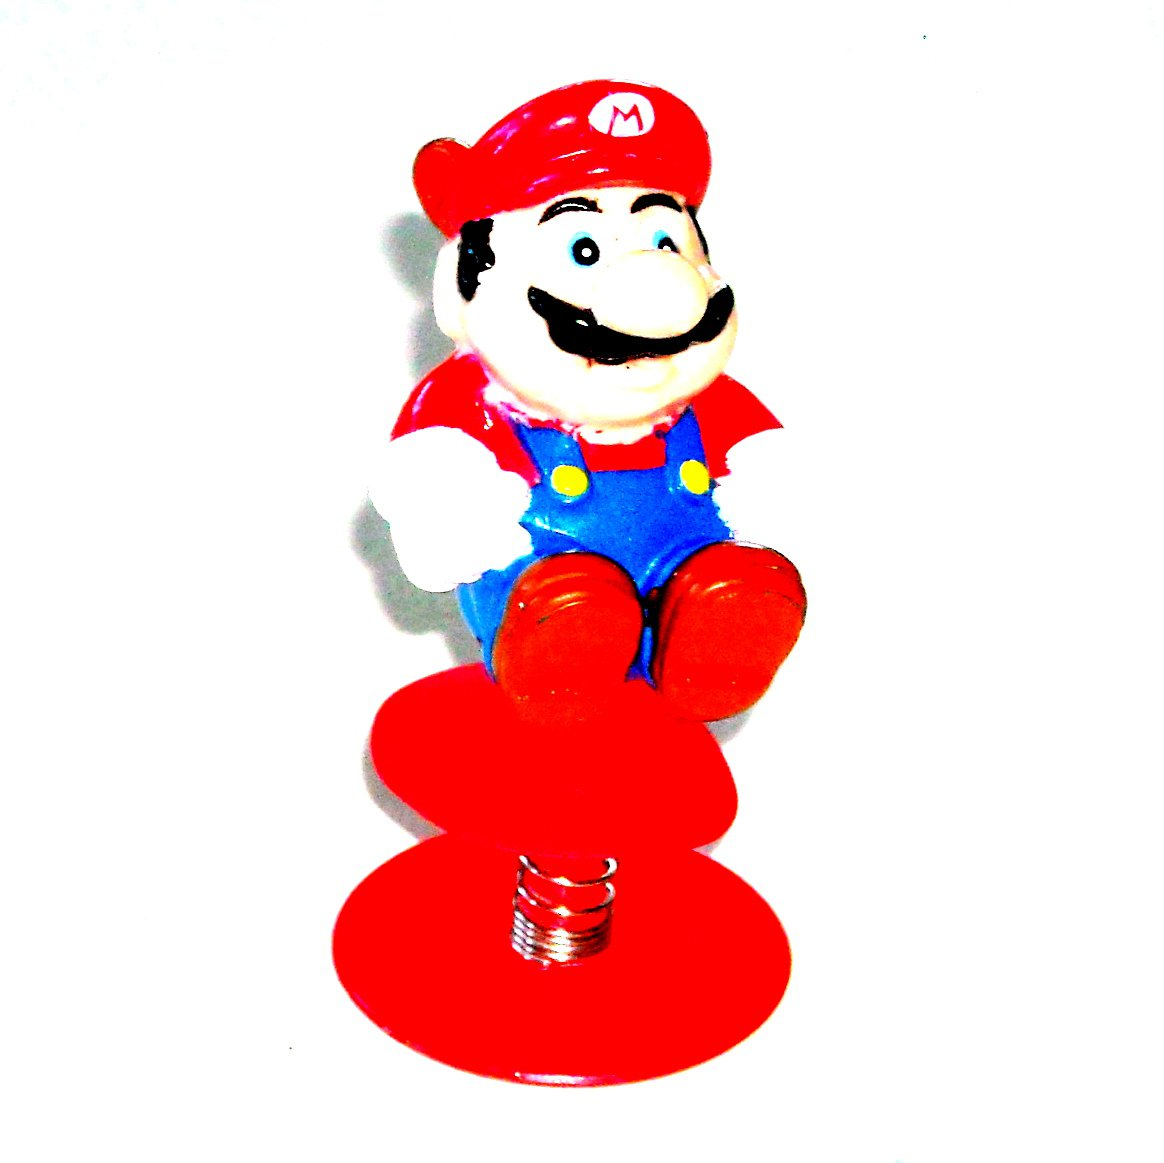 Nintendo Super Mario McDonald's Happy Meal Mario Toys 1989